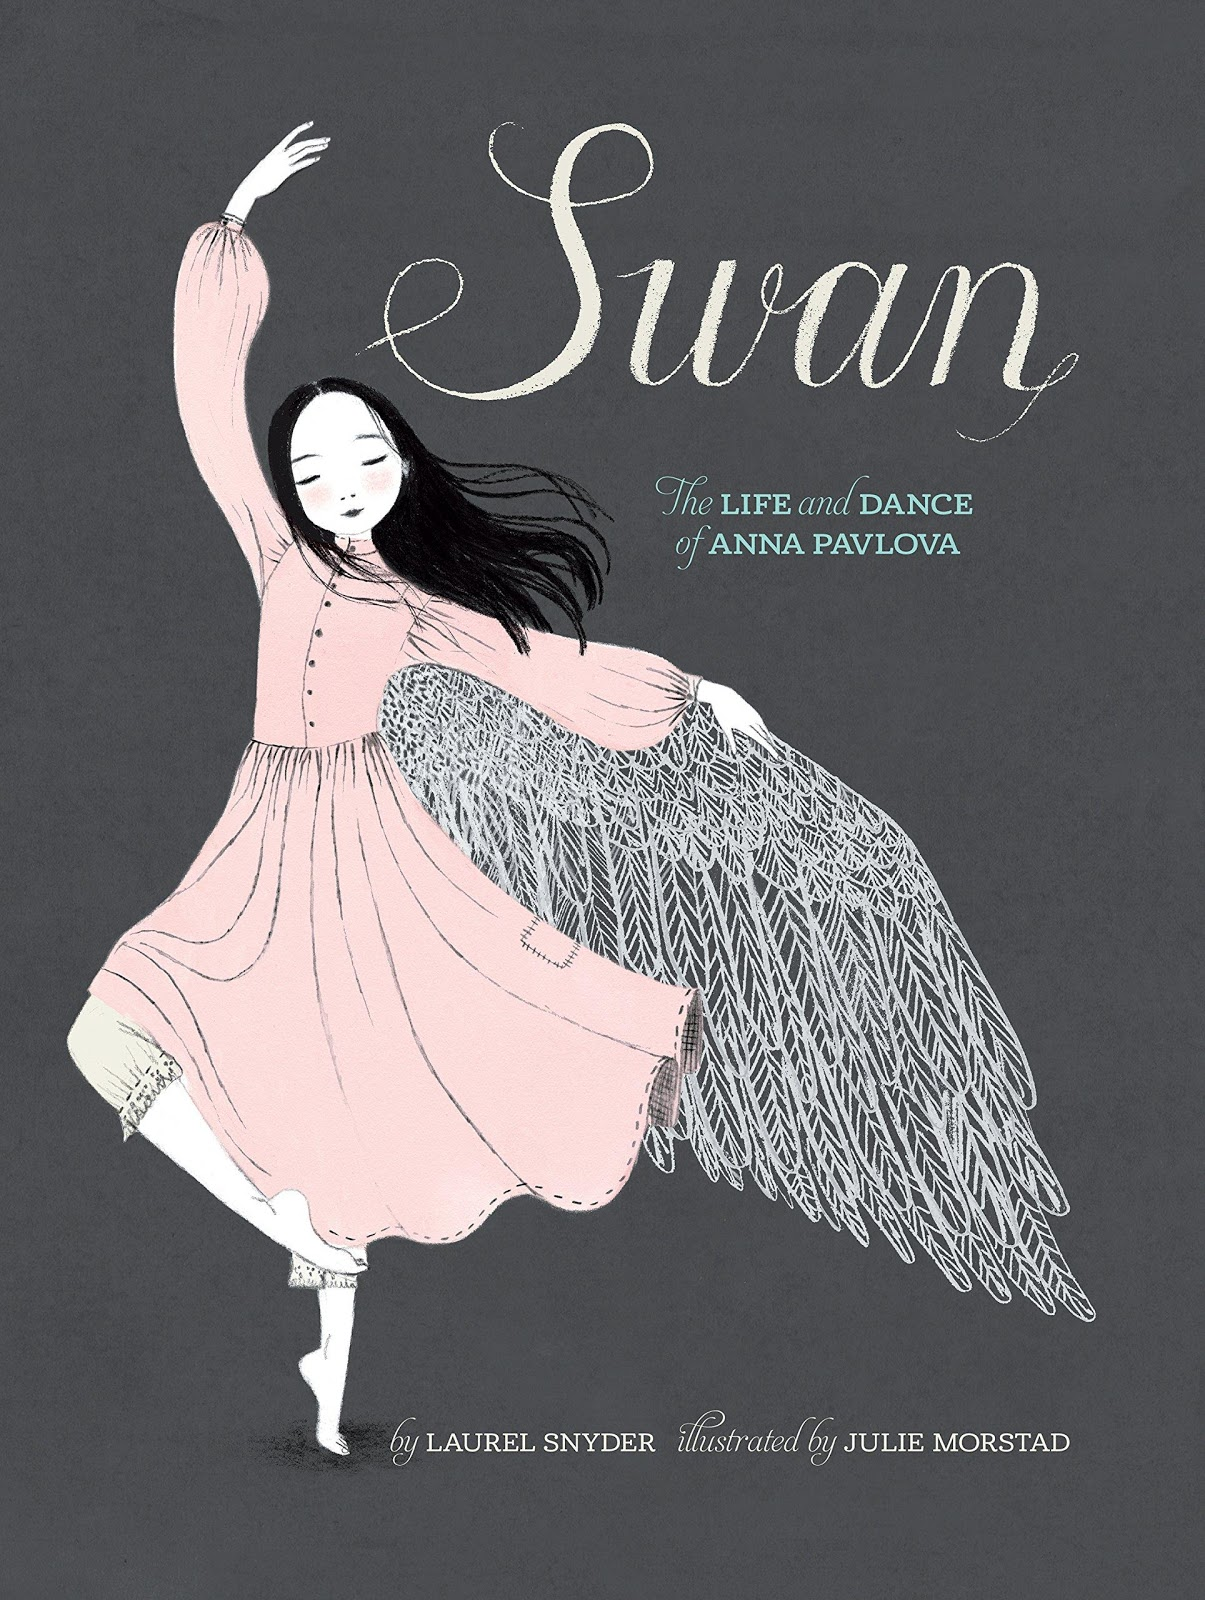 Cover of Swan depicting a young girl with black hair in a pink dress dancing with one arm above her head and the other extended to the side, where wings appear, on a black background.